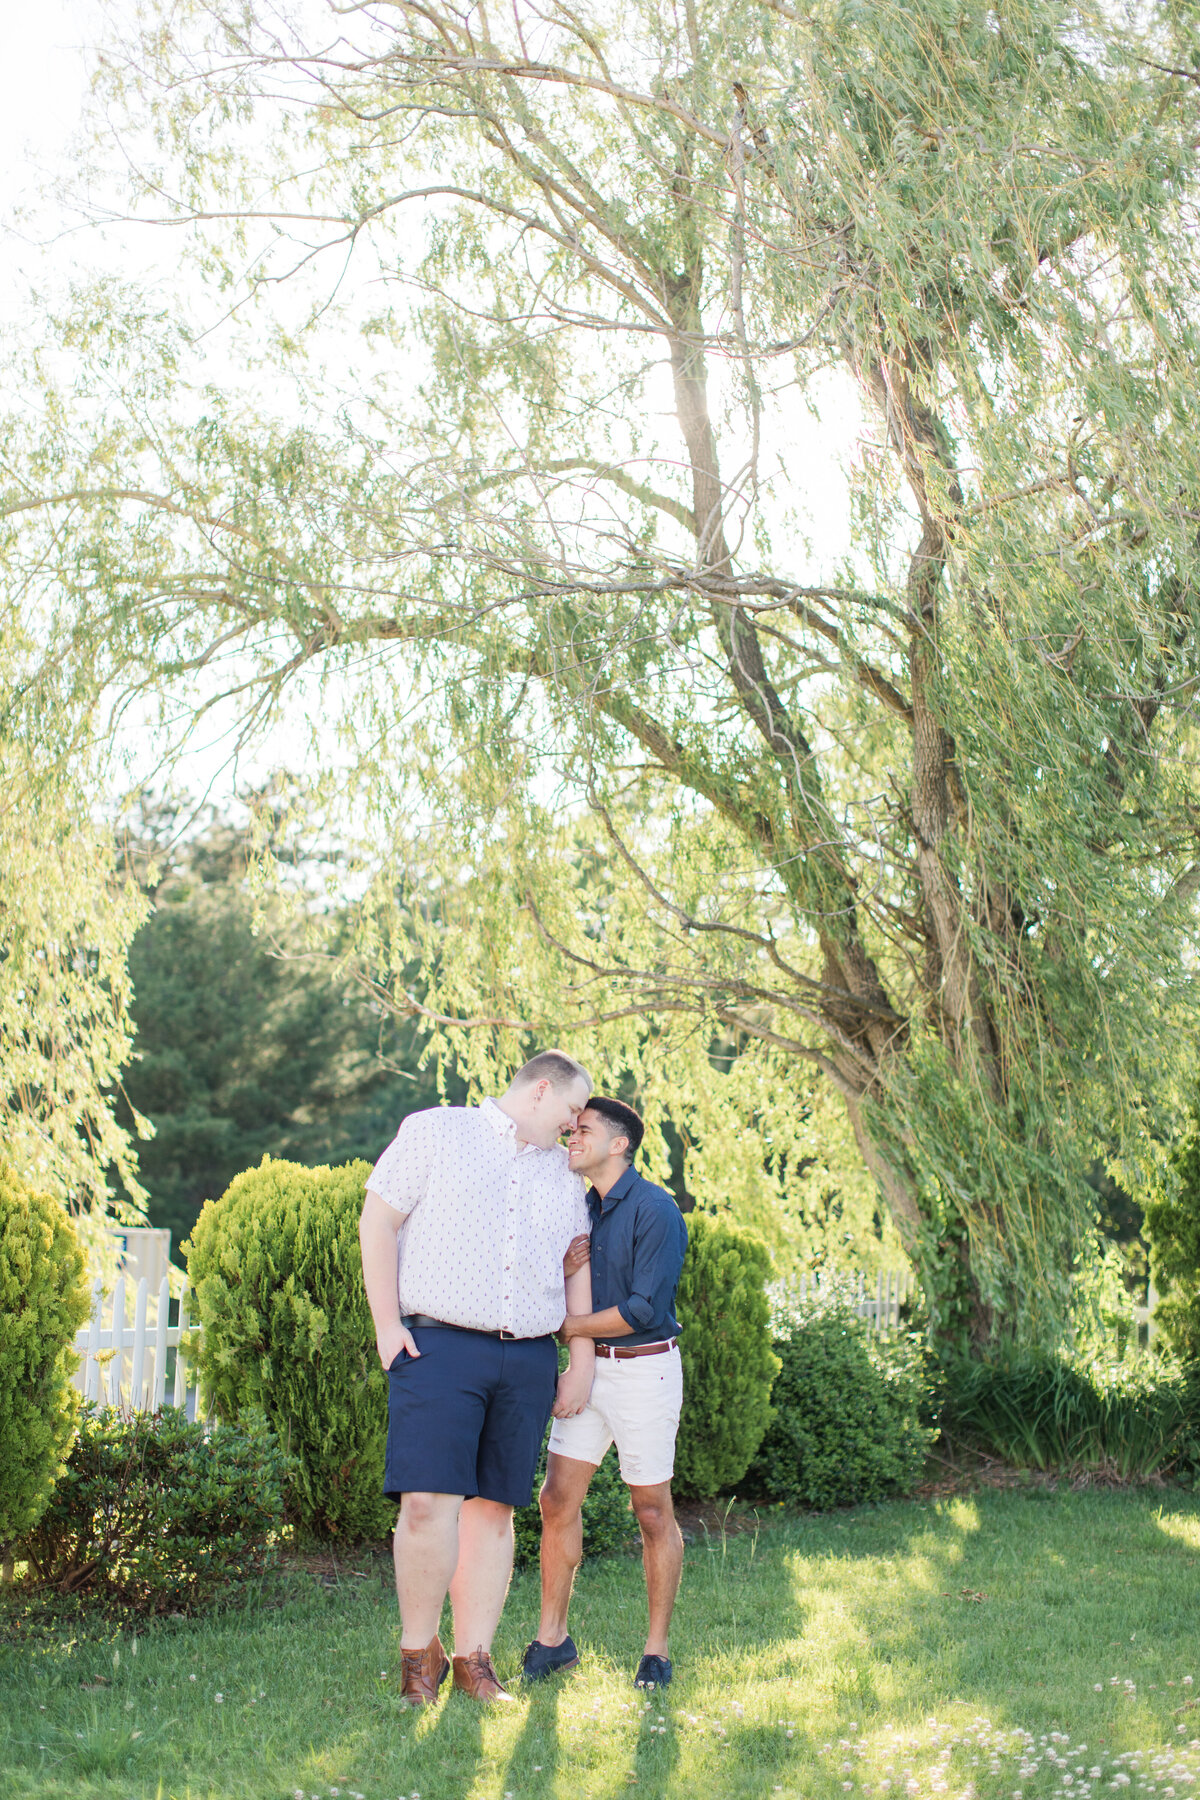 LGBTQ_Engagement_Session_Renault_Winery_Galloway_New_Jersey-15